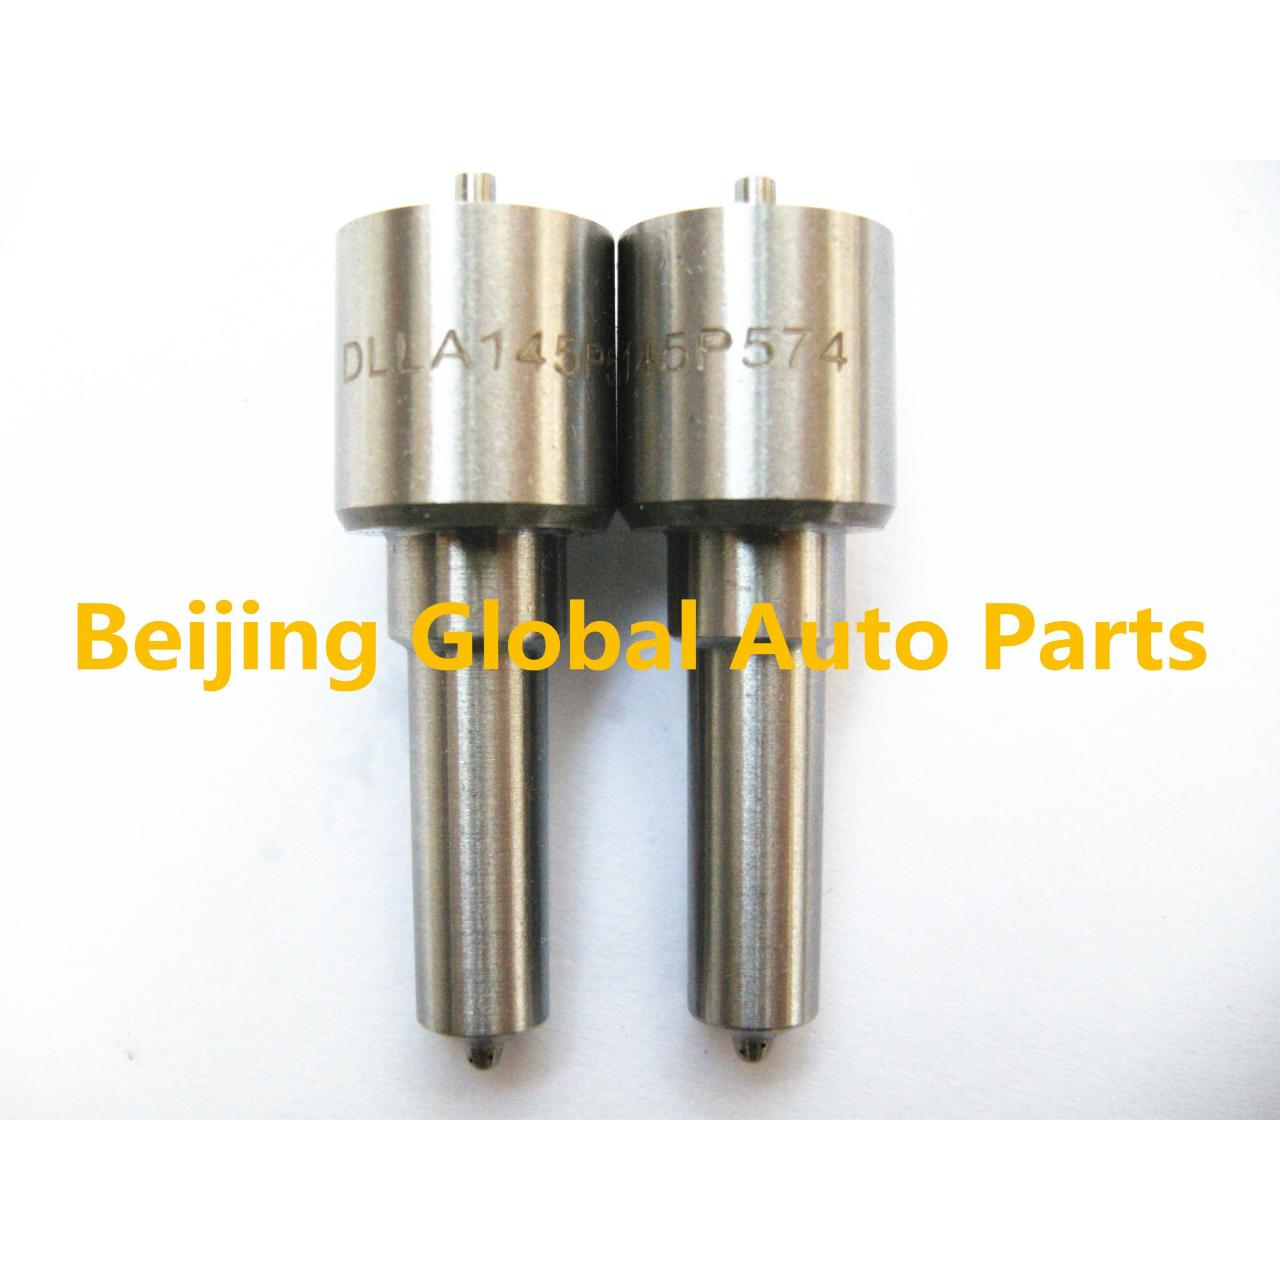 China Common Rail Nozzle DLLA145P574 0433171435 0 433 171 435 wholesale